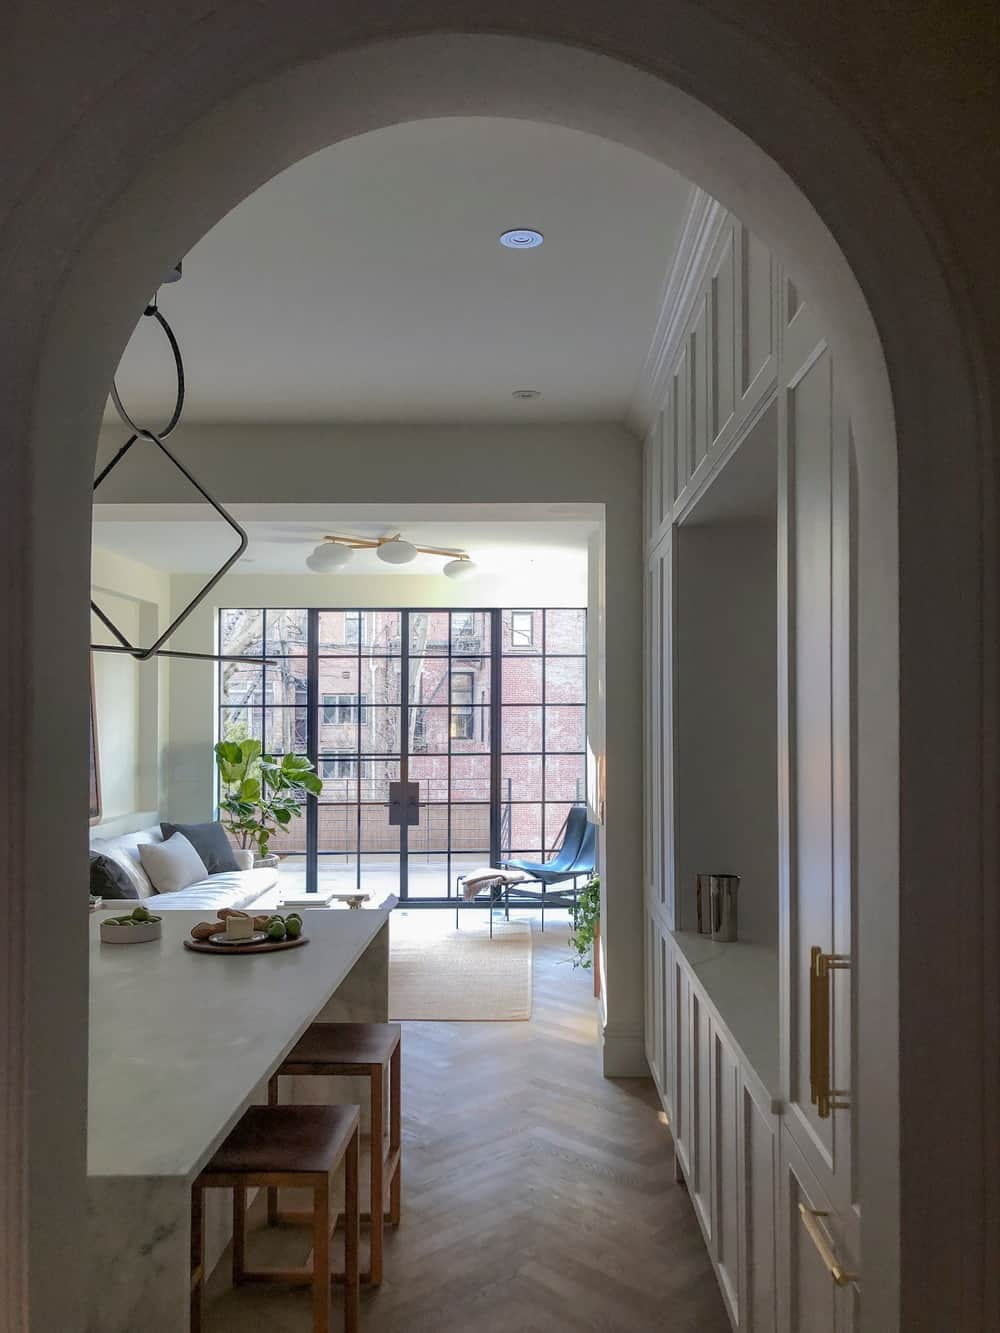 This is a view of the kitchen and living room from the vantage of the arched entryway.